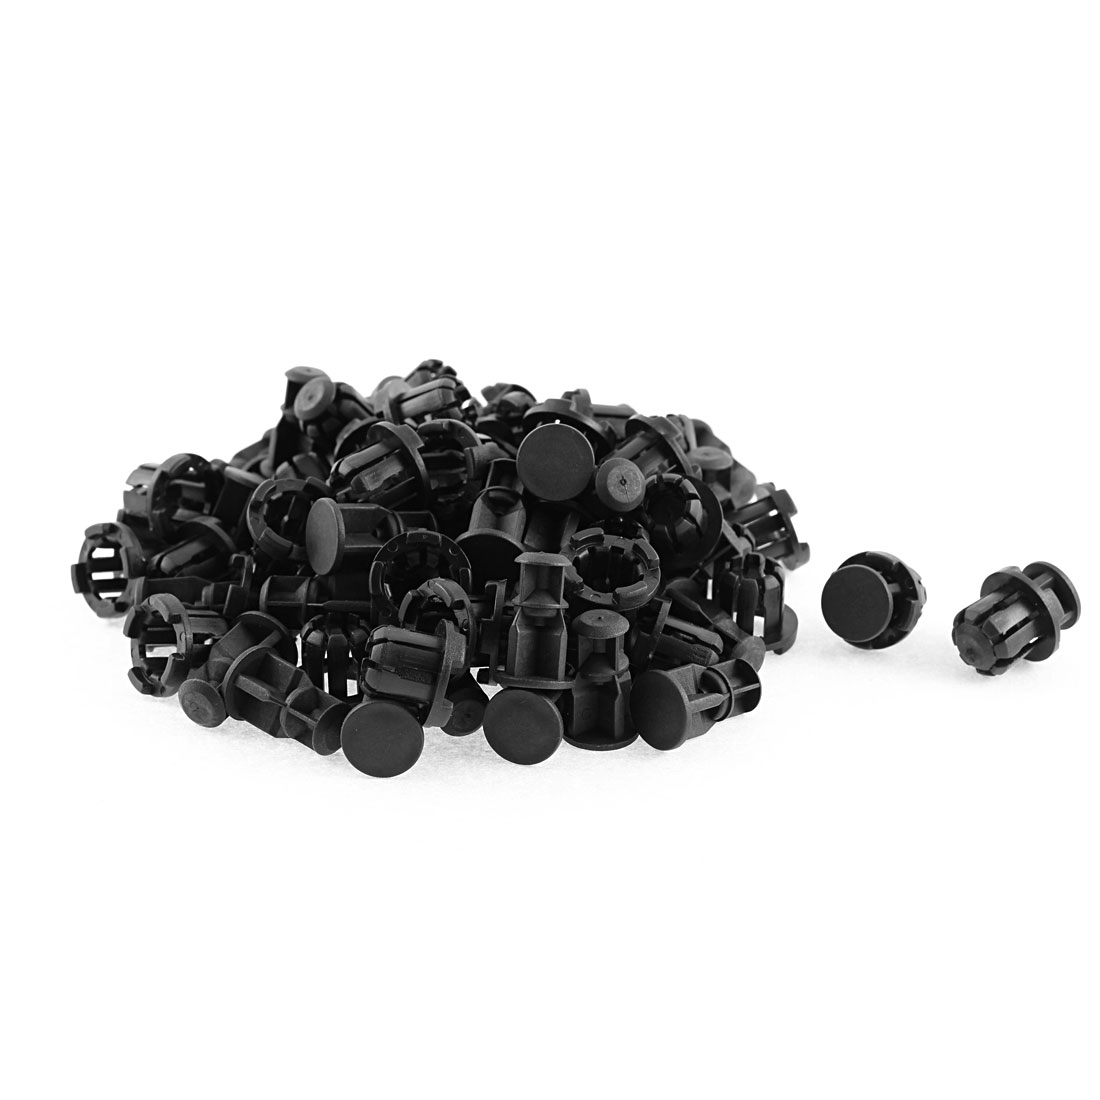 50 Pcs 21mm x 15mm Black Plastic Rivet Bumper Lining Trim Panel Retainer Fastener Clips